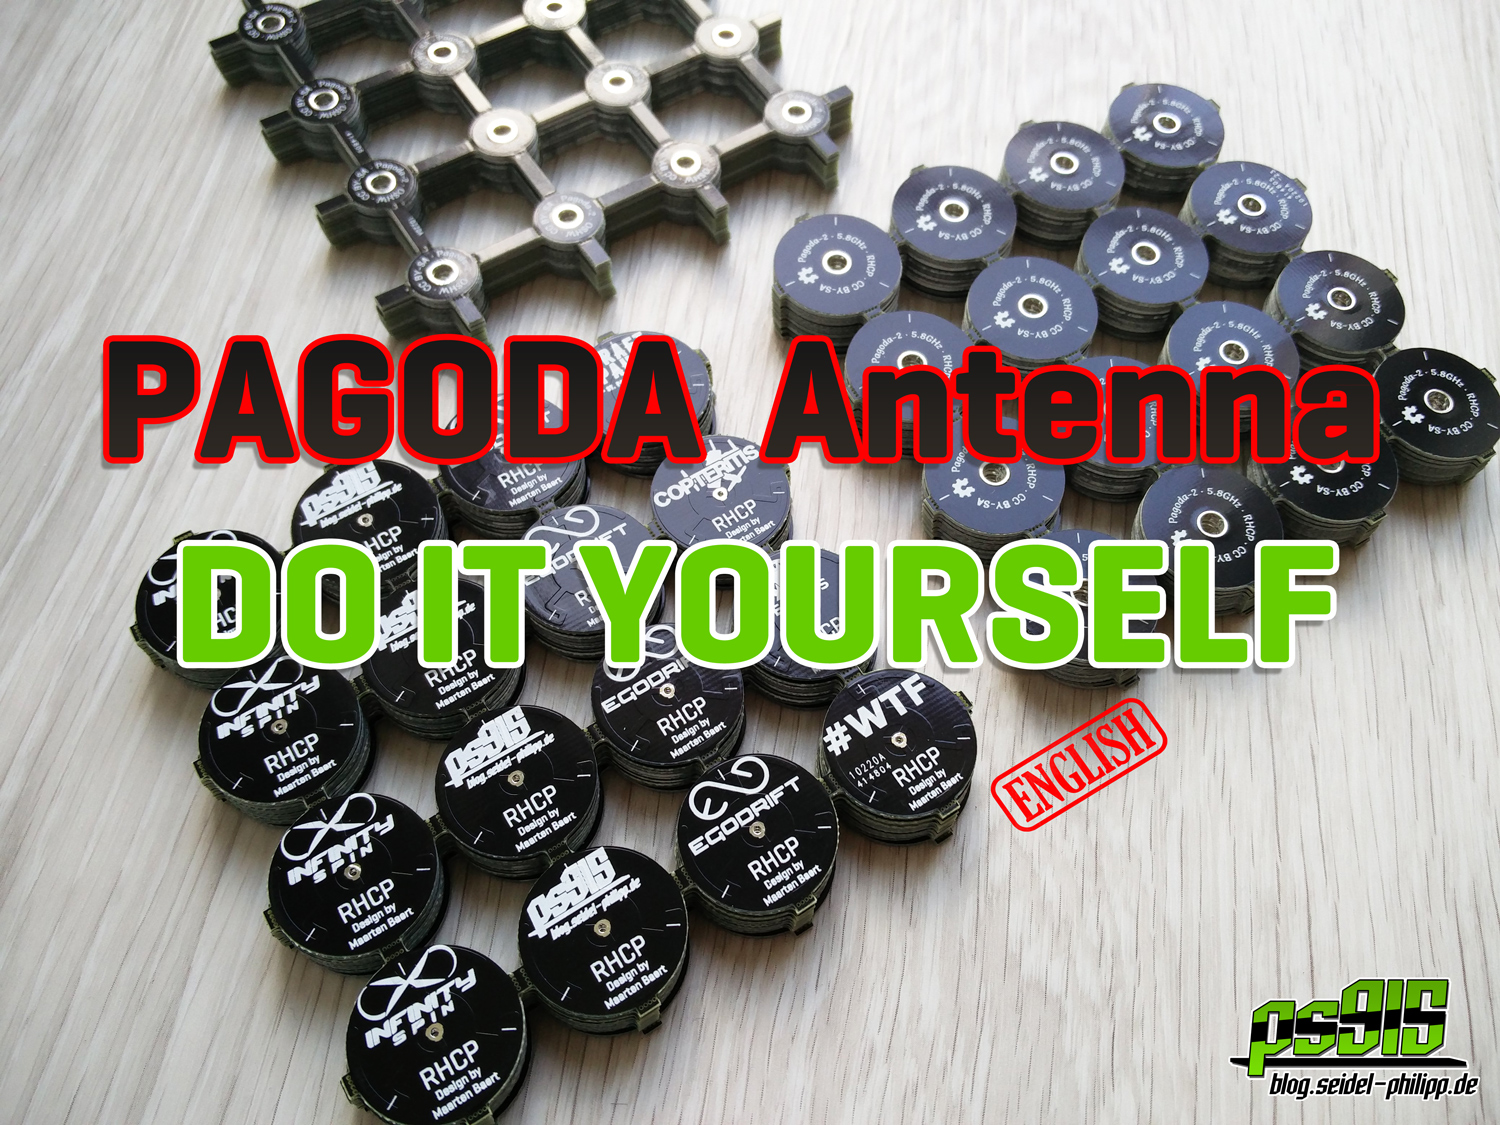 Do It Yourself Pagoda Fpv Antenna For Less Than 2 Design Calculator Circuit In This Article I Would Like To Show You How Can Build The Popular Antennas We Simply Order 160 Pcbs Via